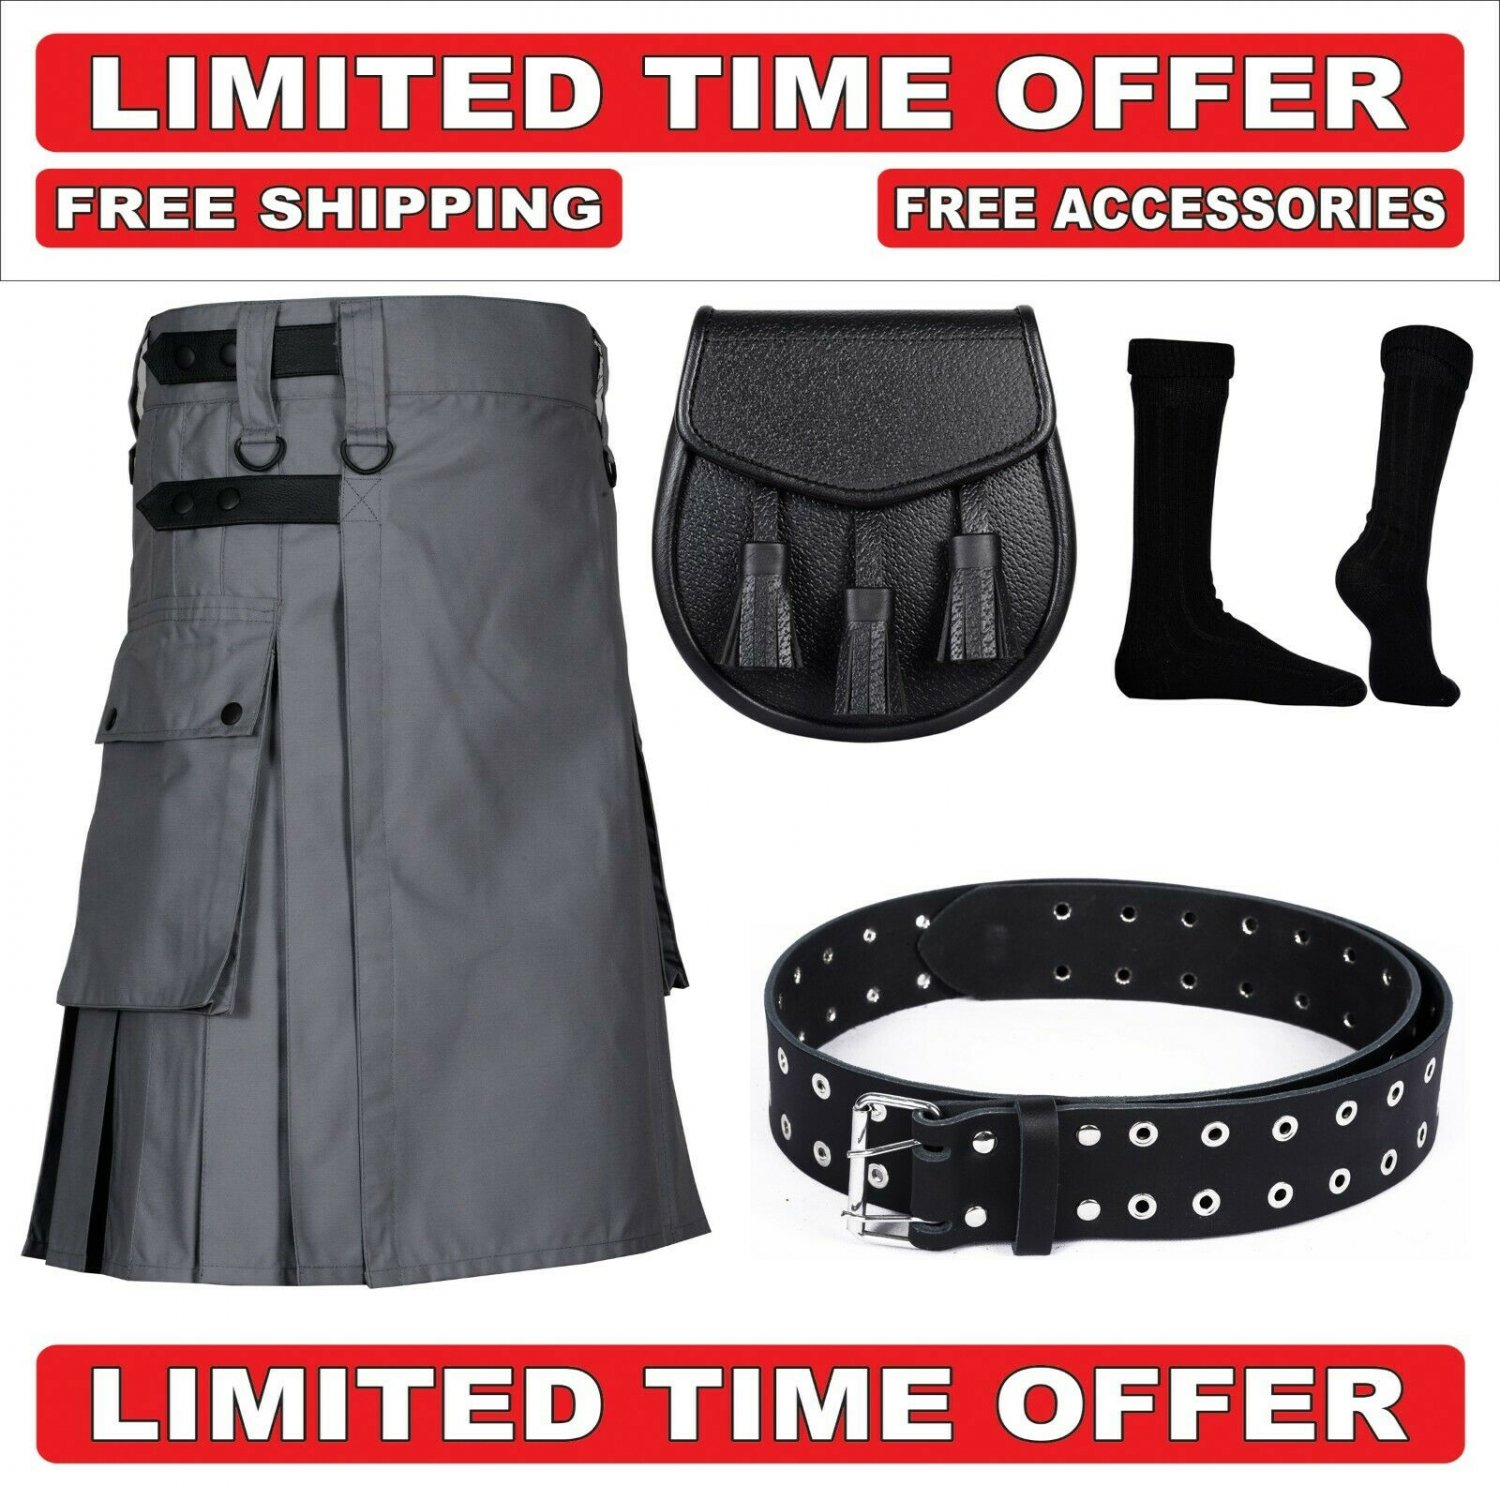 48 size grey Men's Cotton Utility Scottish Kilt With Free Accessories and Free Shipping